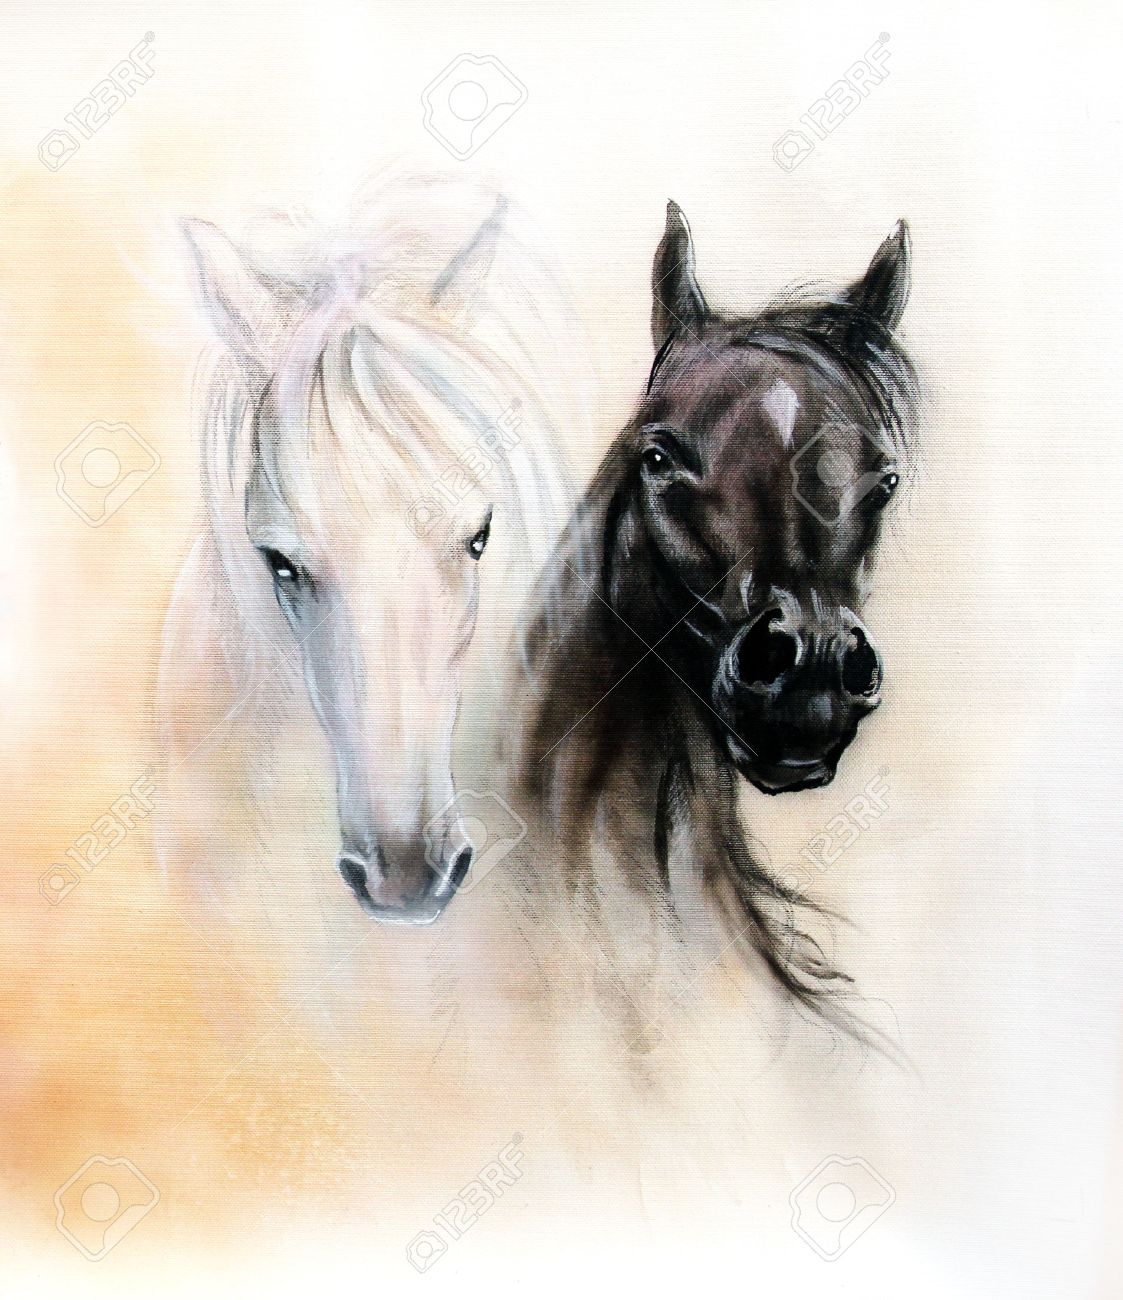 1123x1300 Horse Heads, Two Black And White Horse Spirits, Beautiful Detailed